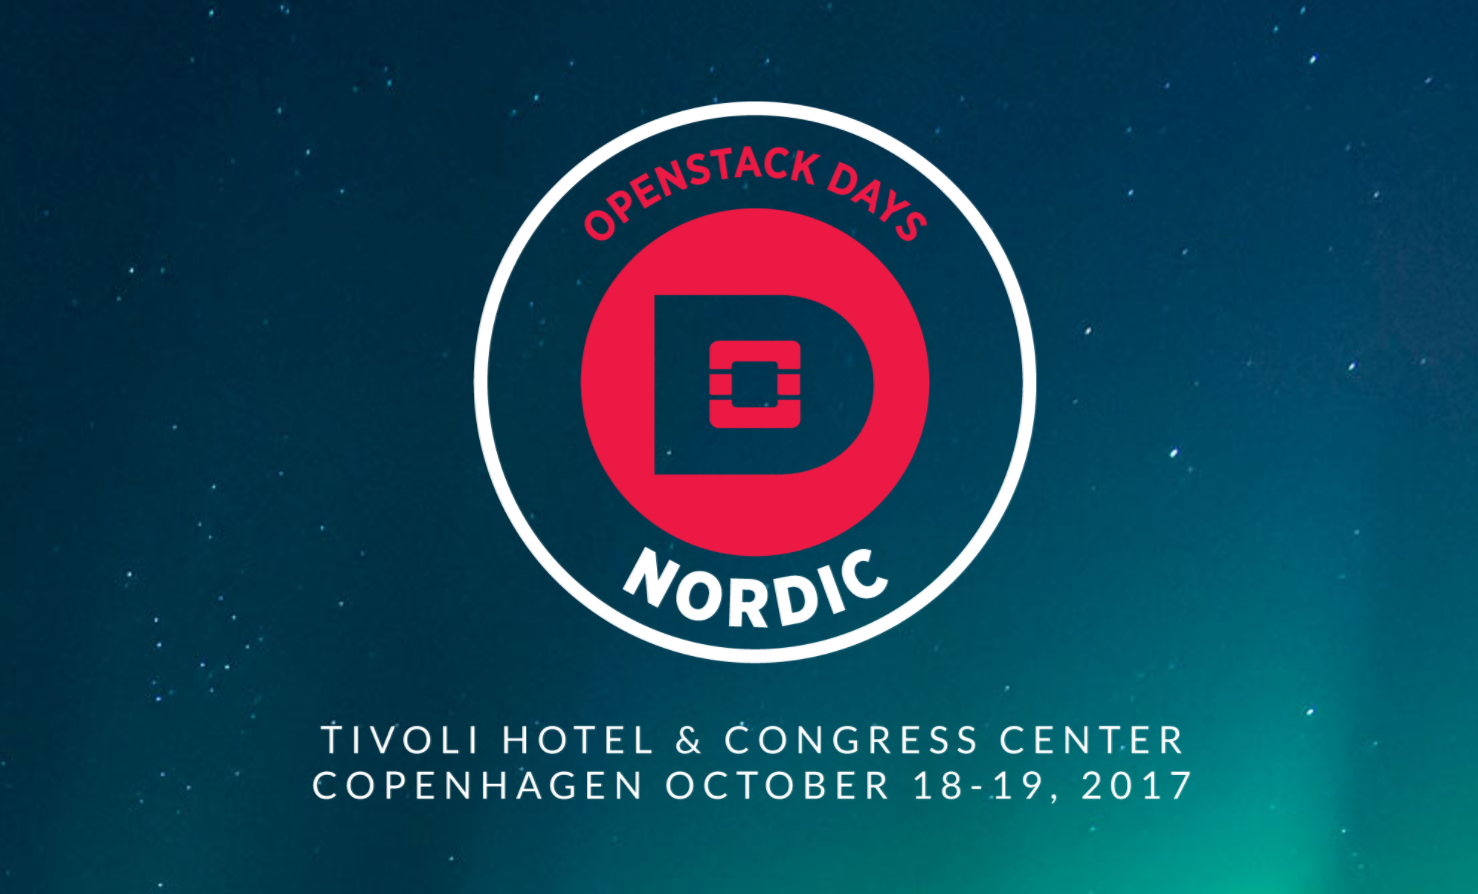 nordic-event.png